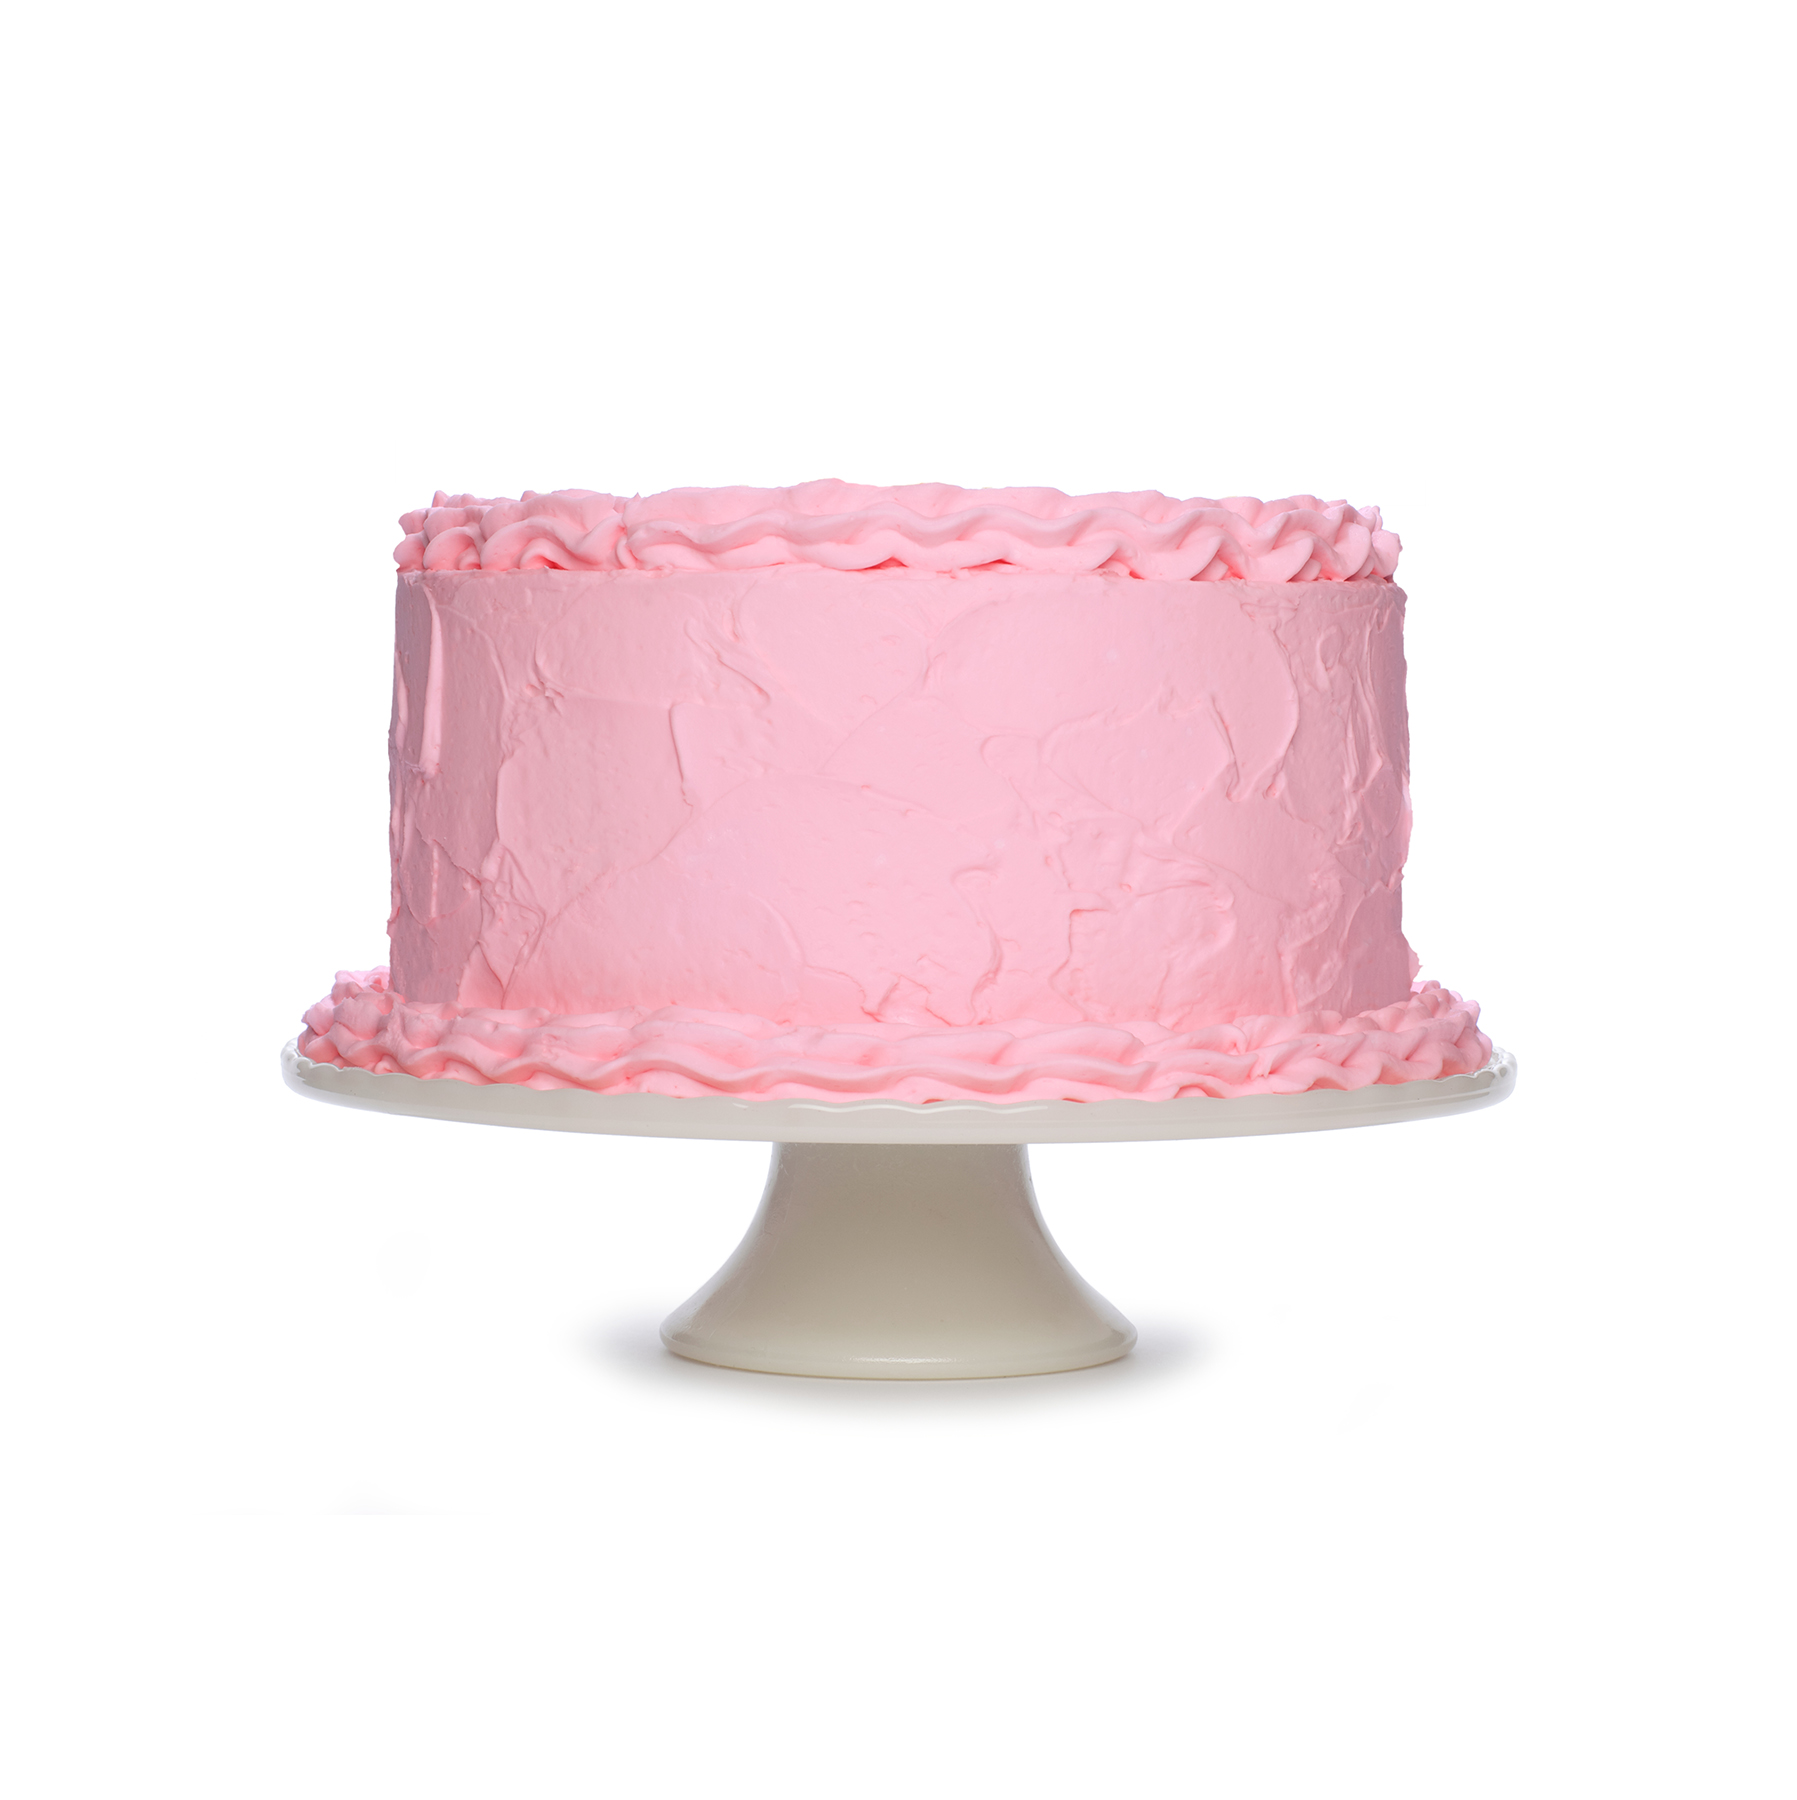 cake-pink-frosting